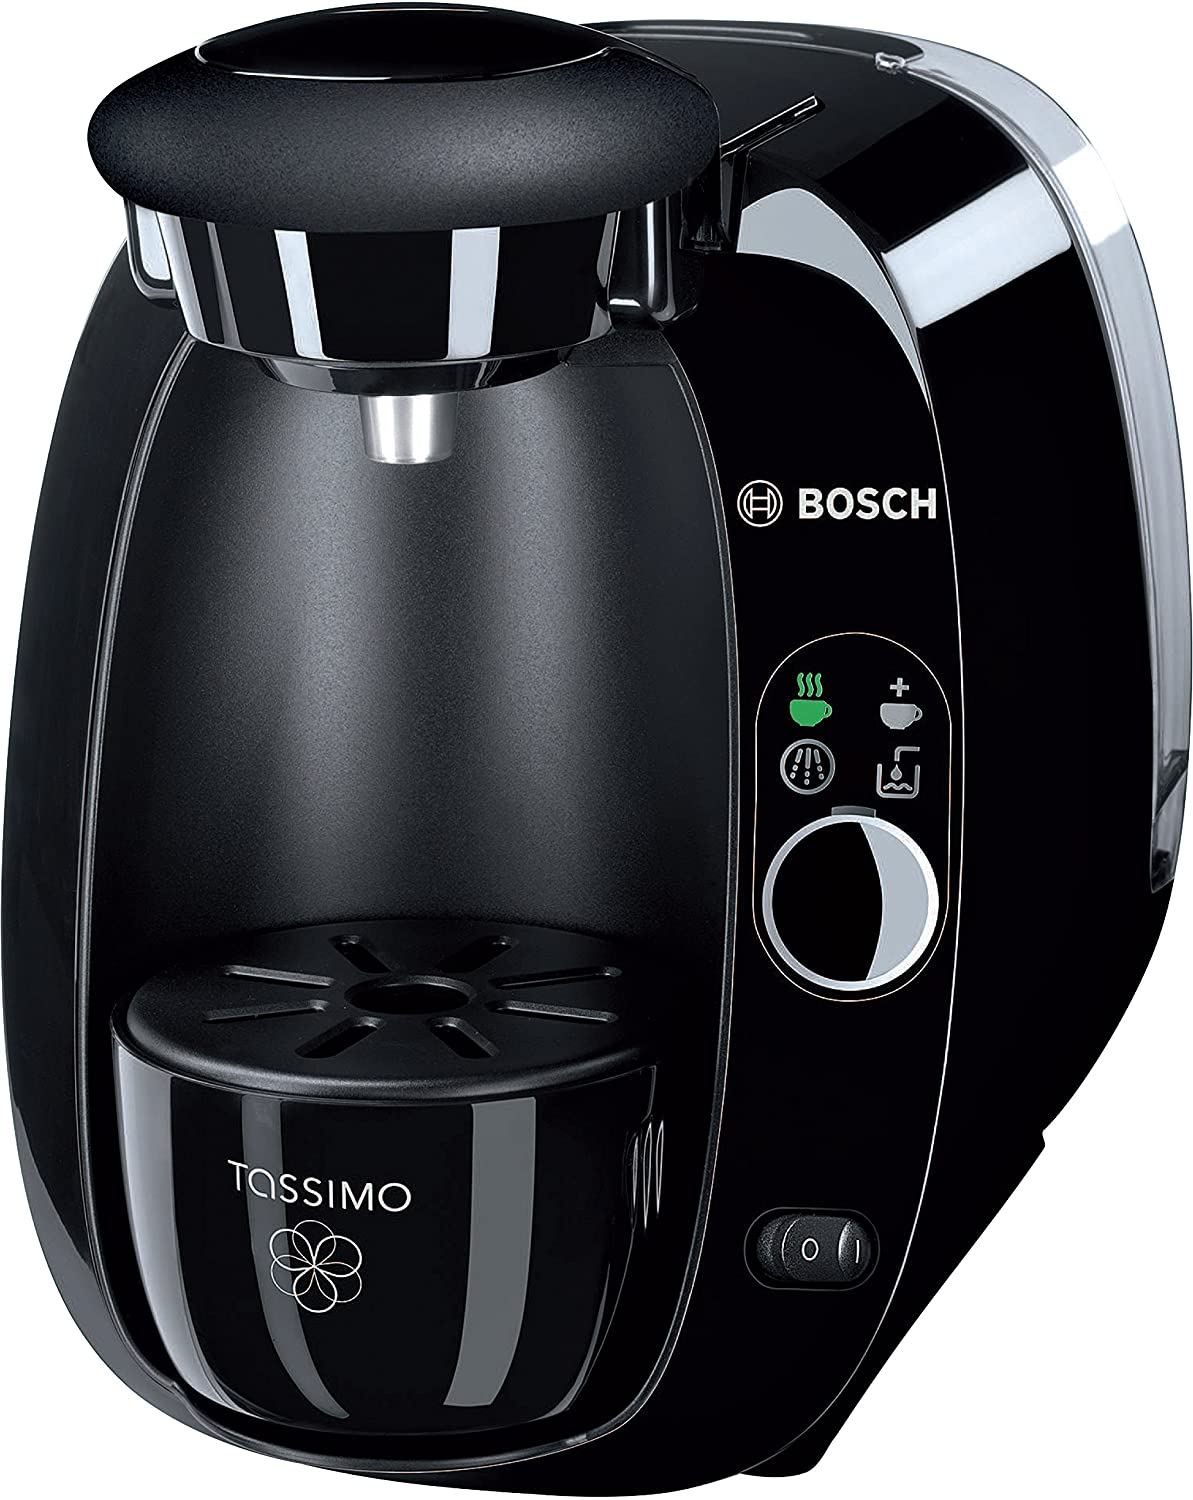 Bosch Tassimo Coffee Maker Models : Bosch Tassimo T20 Amia Hot Beverage Coffee Espresso Maker Machine TAS2002GB NEW